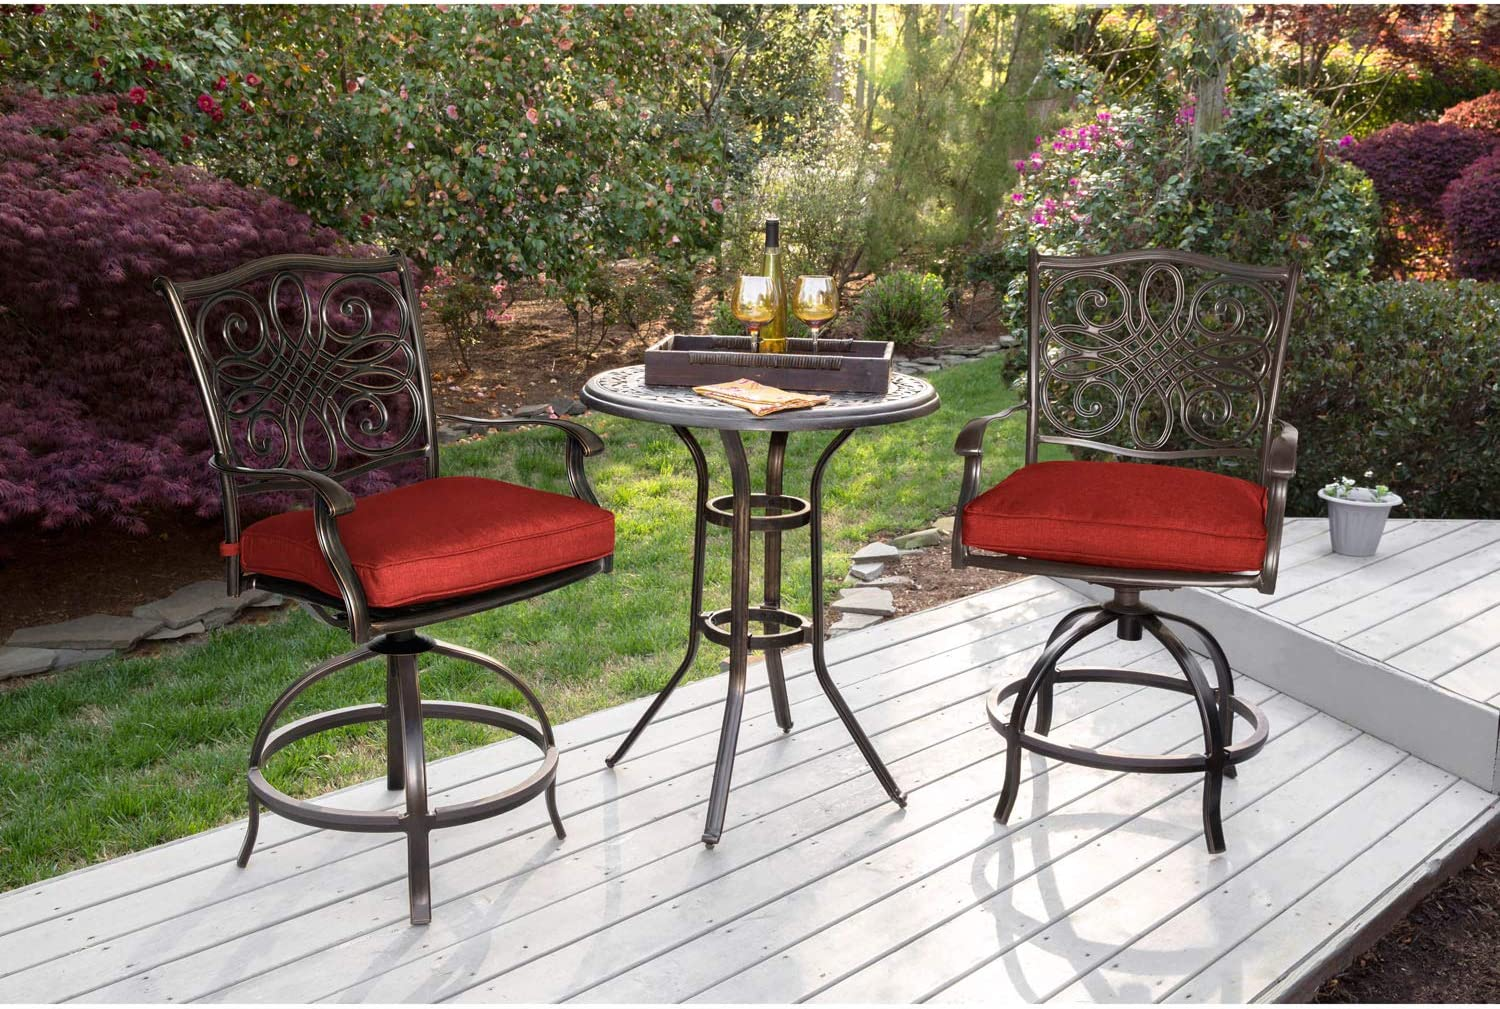 Hanover Traditions 3-Piece High-Dining Bistro Set in Red, TRAD3PCSWBR-RED Outdoor Furniture